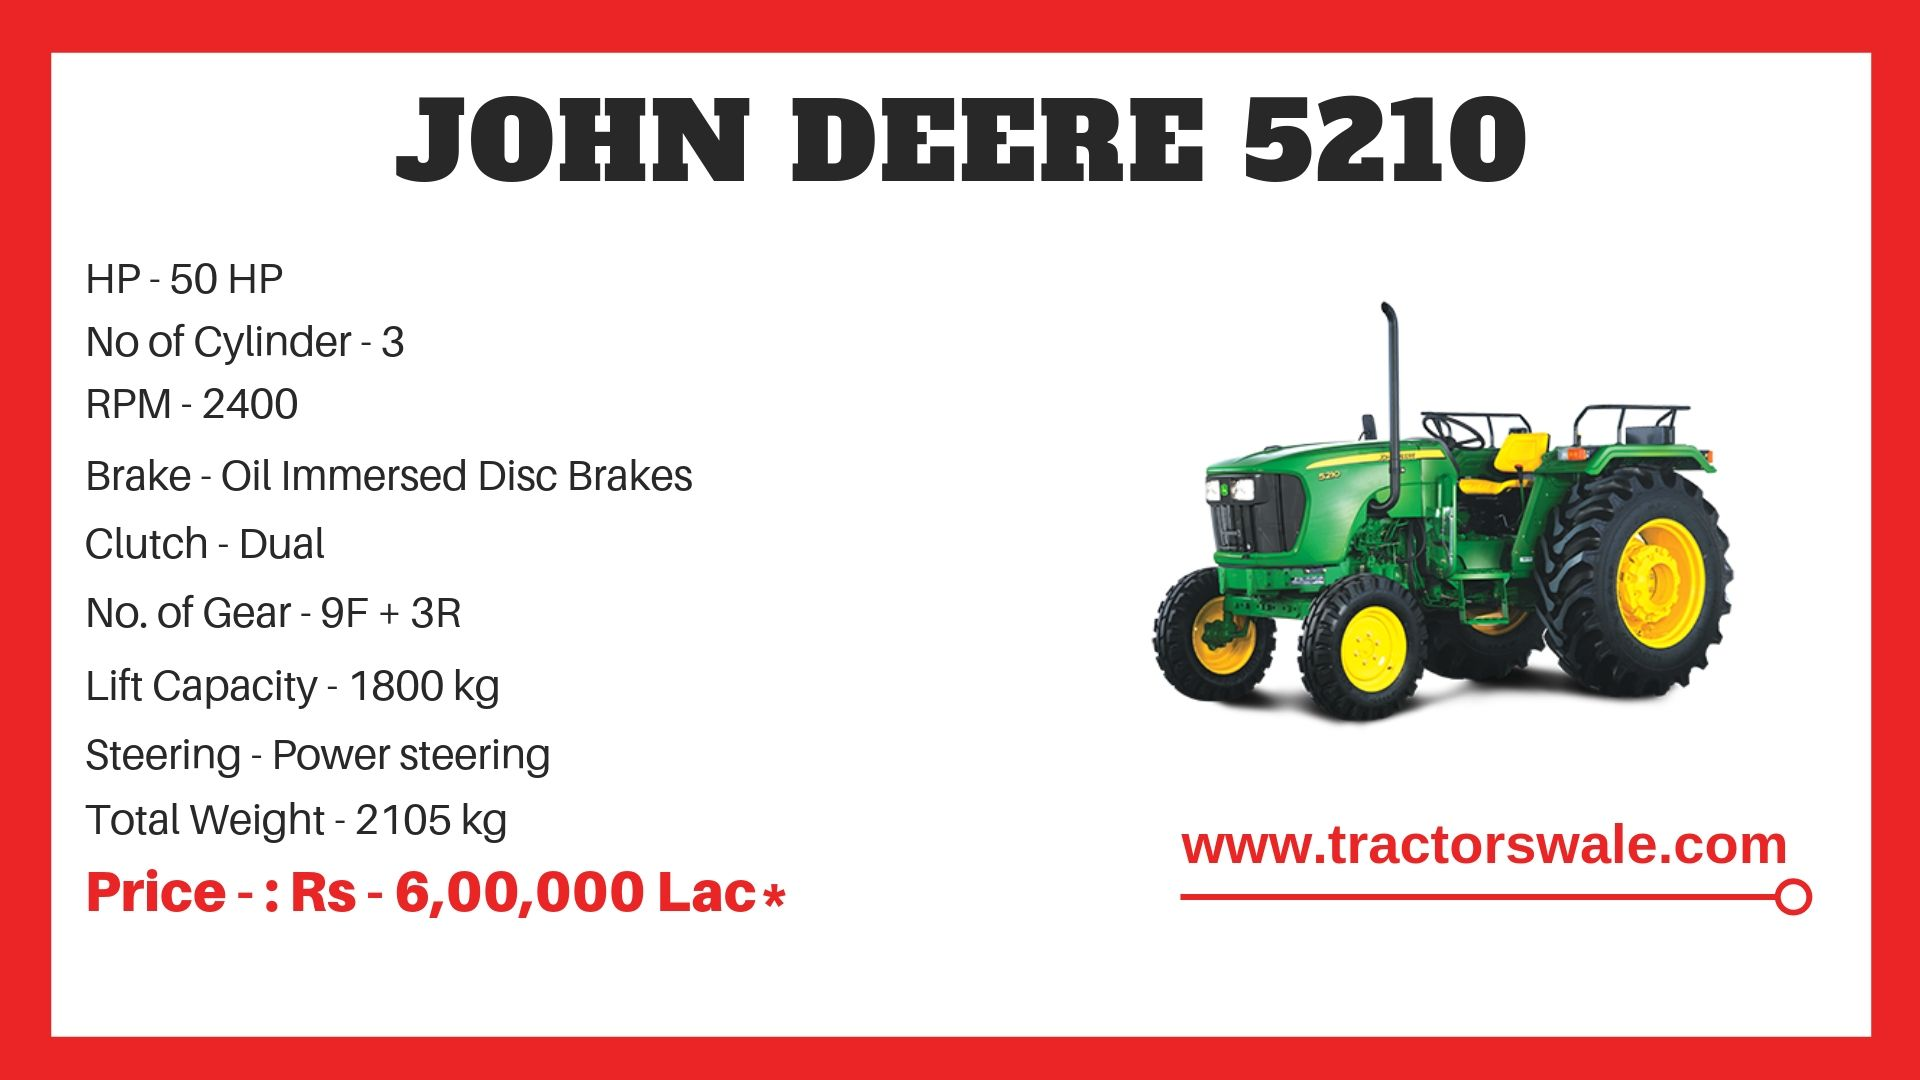 John Deere 5210 Tractor Specifications